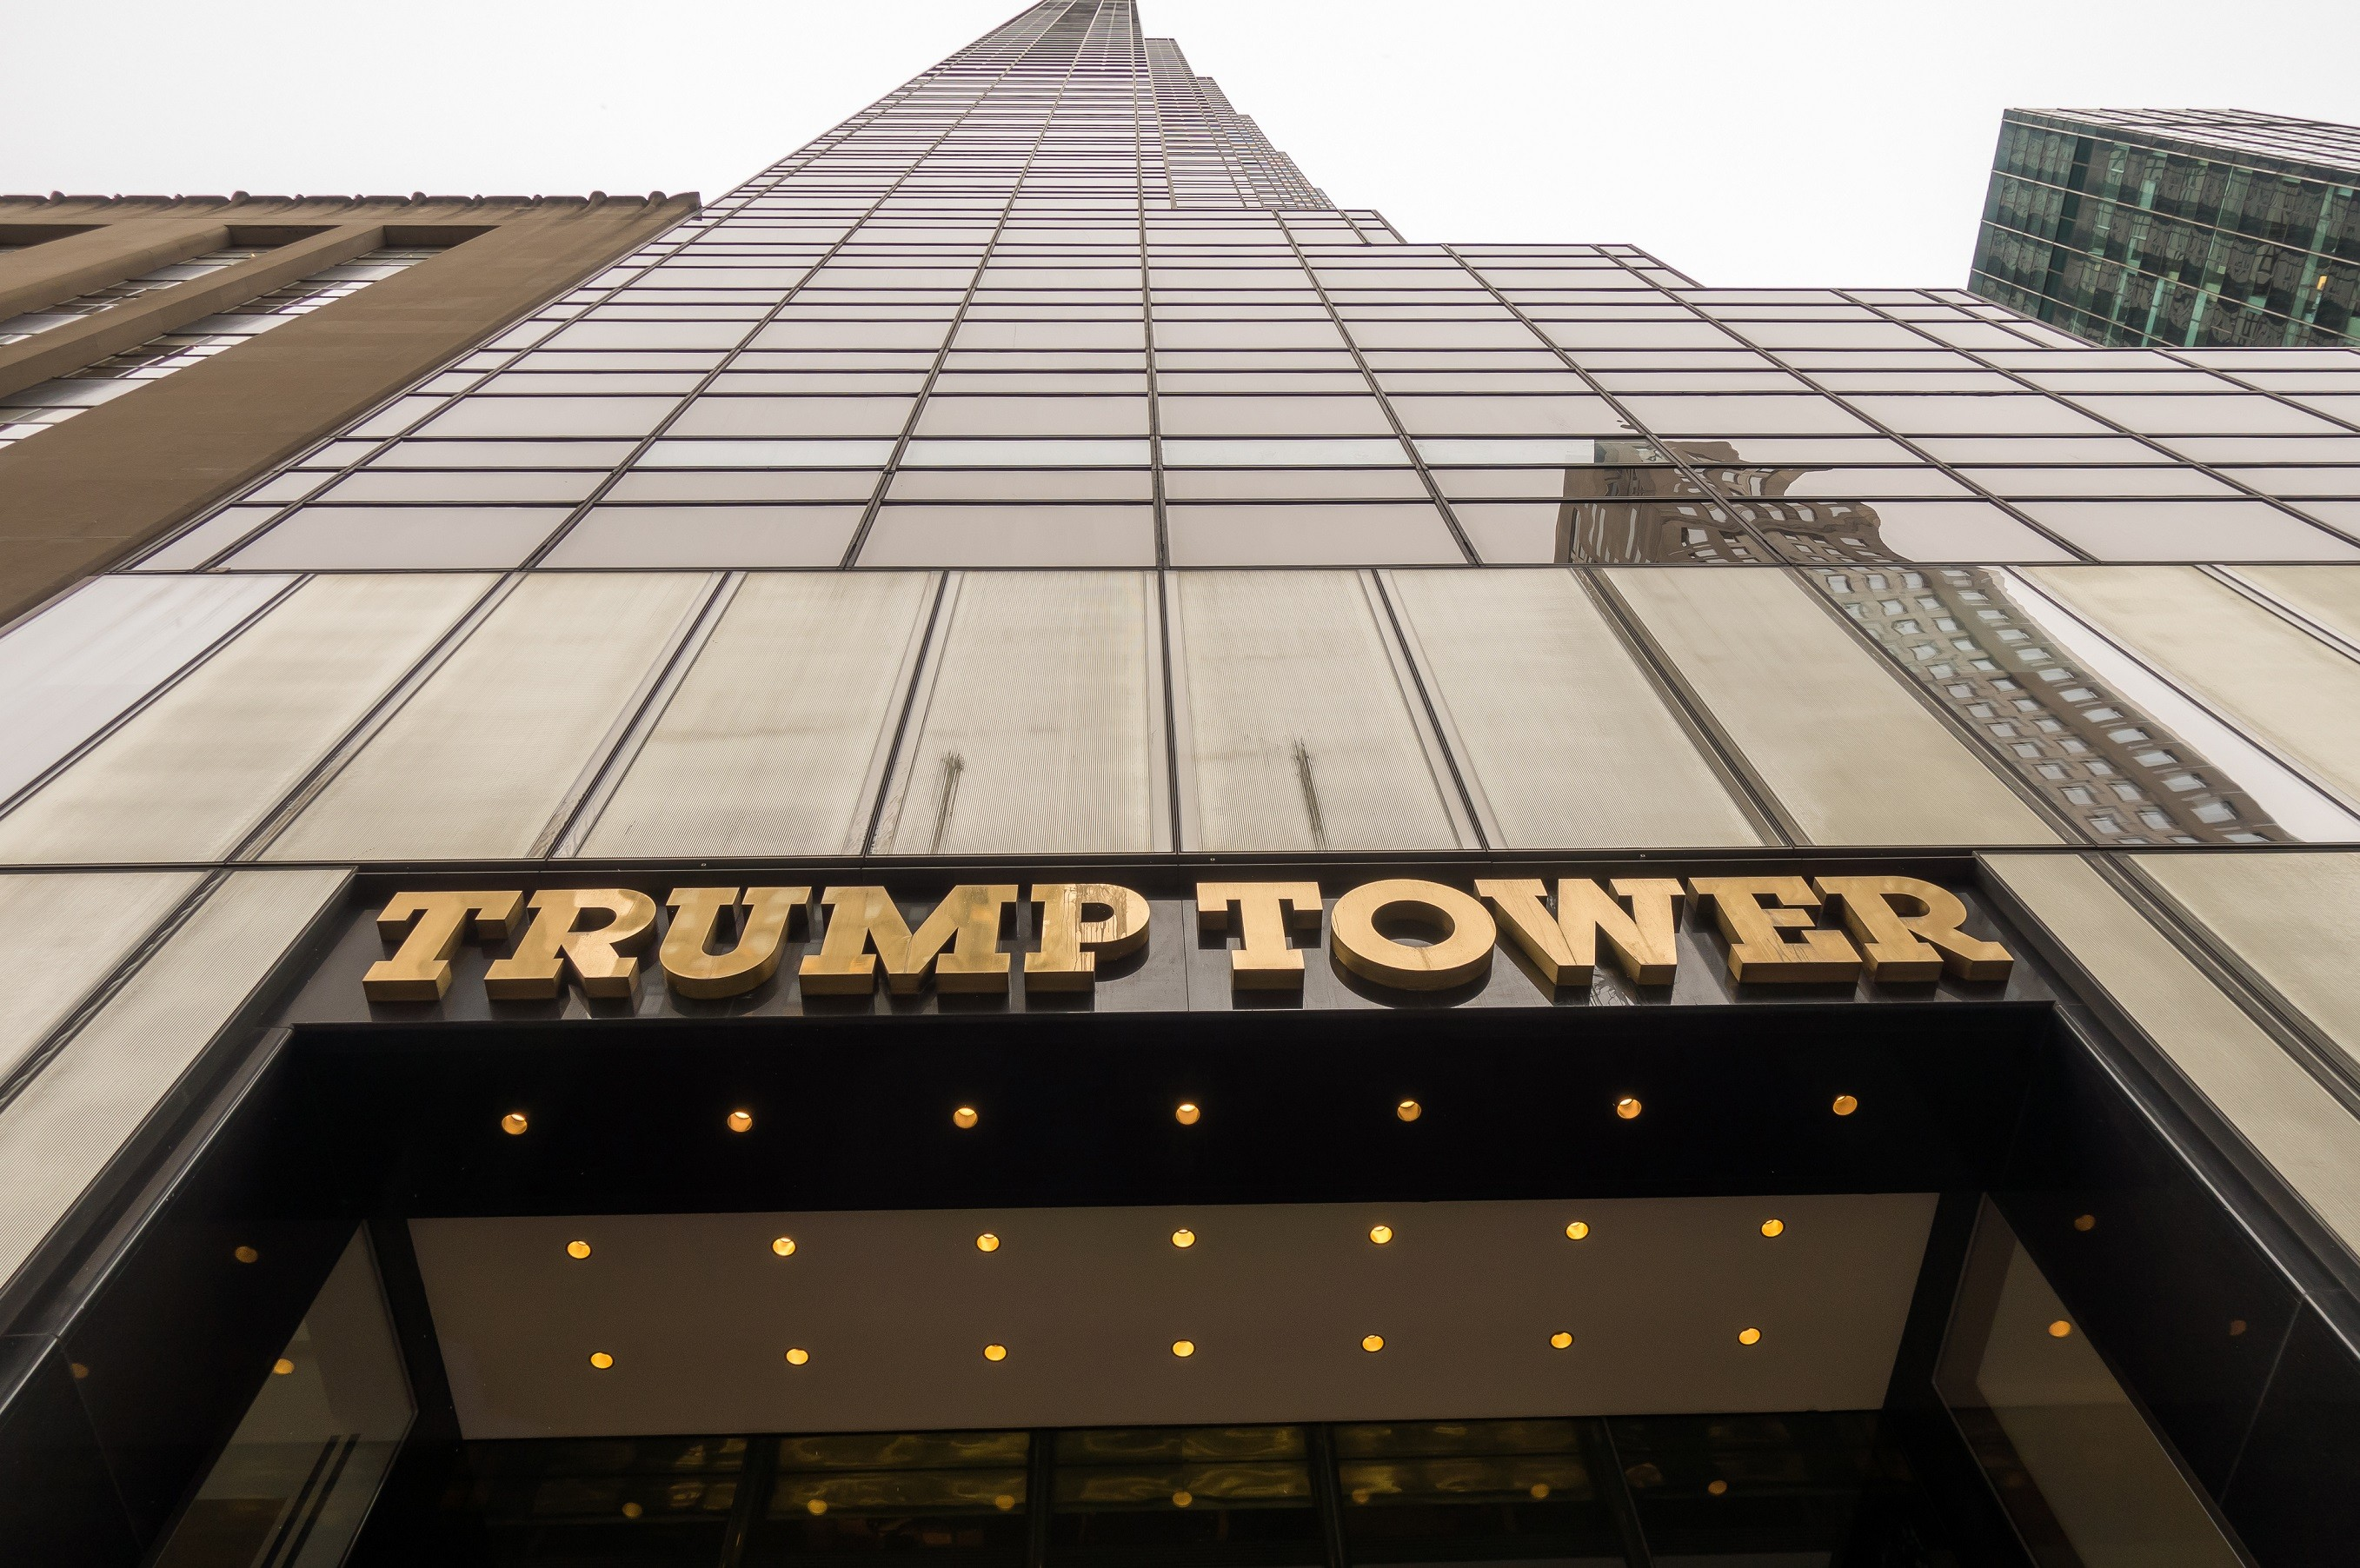 exterior of Trump Tower in New York City